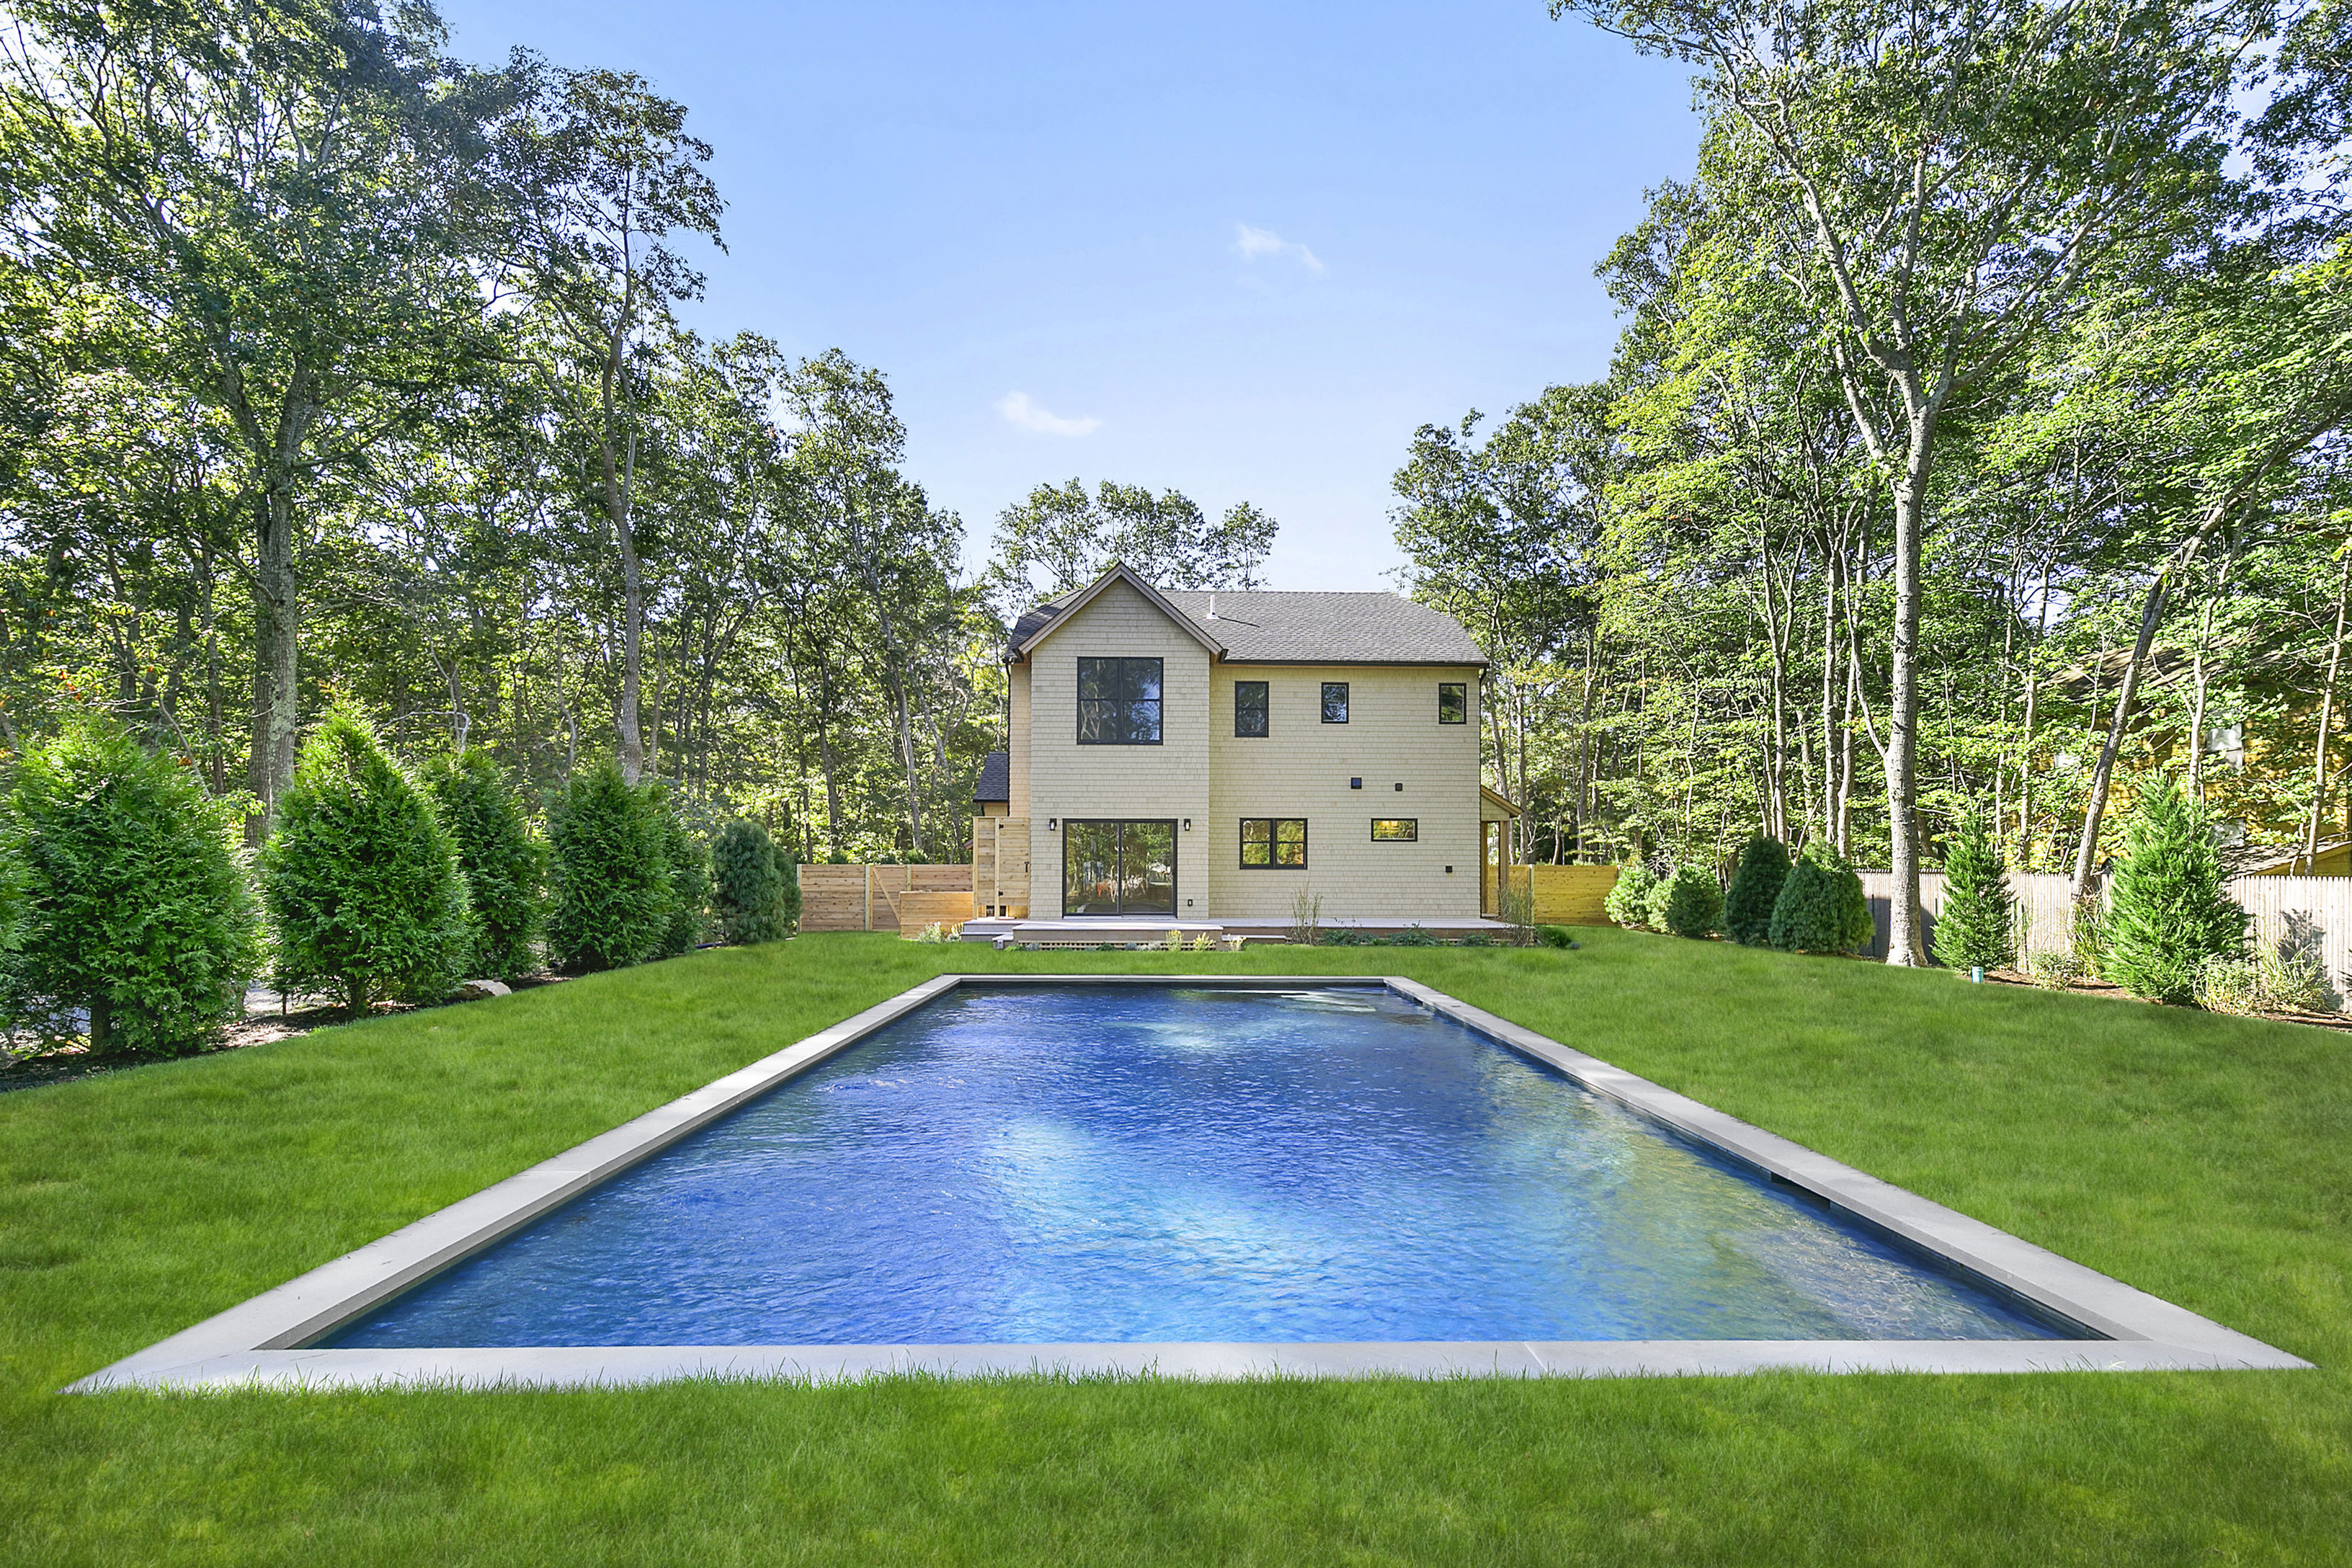 80 Sycamore Dr - East Hampton Springs, New York